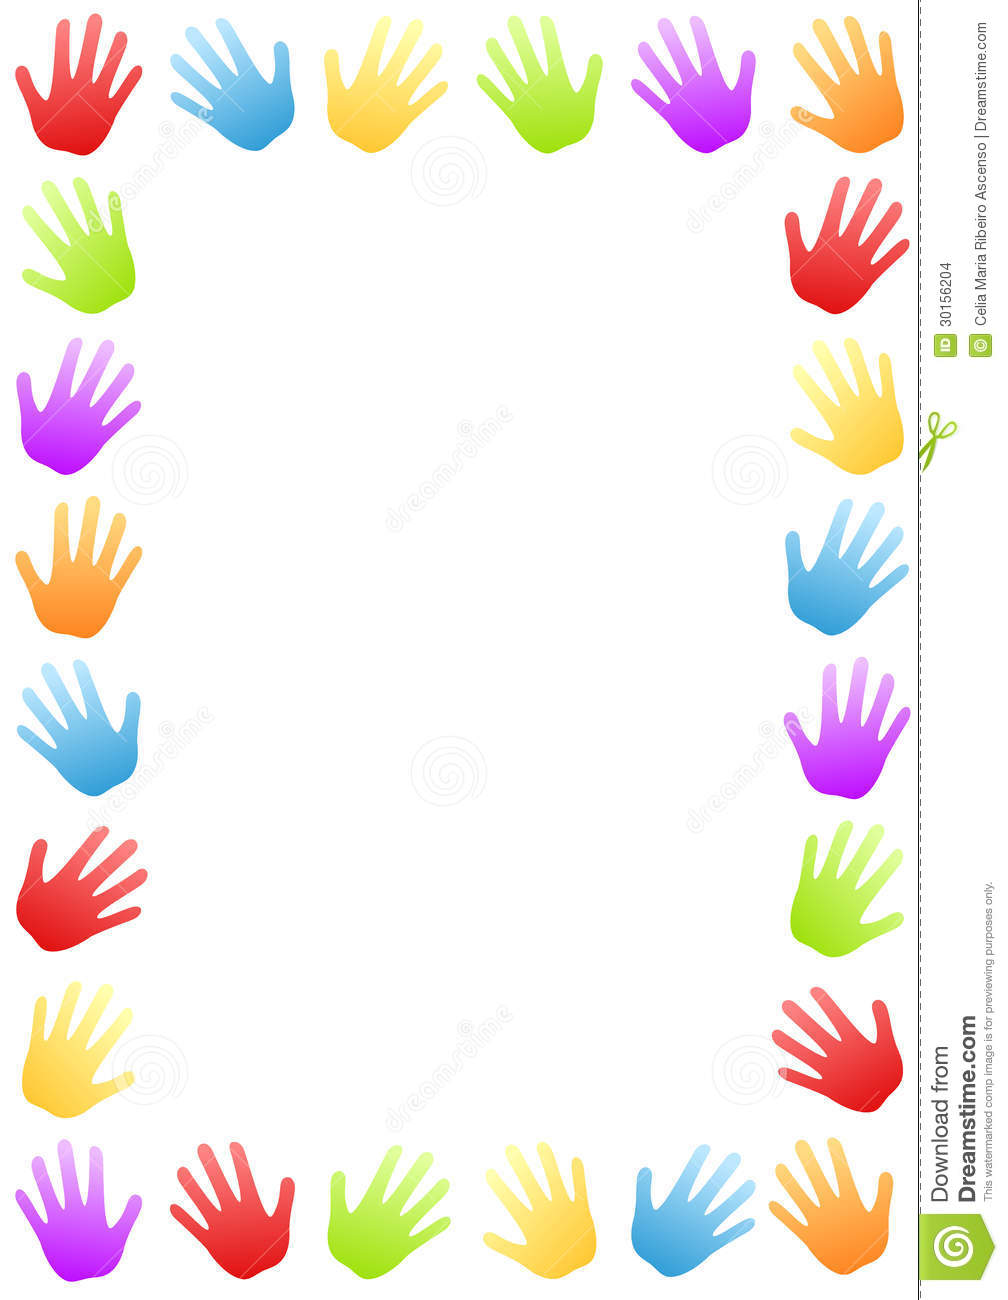 Colored Hands Border Frame stock photo. Illustration of colors.